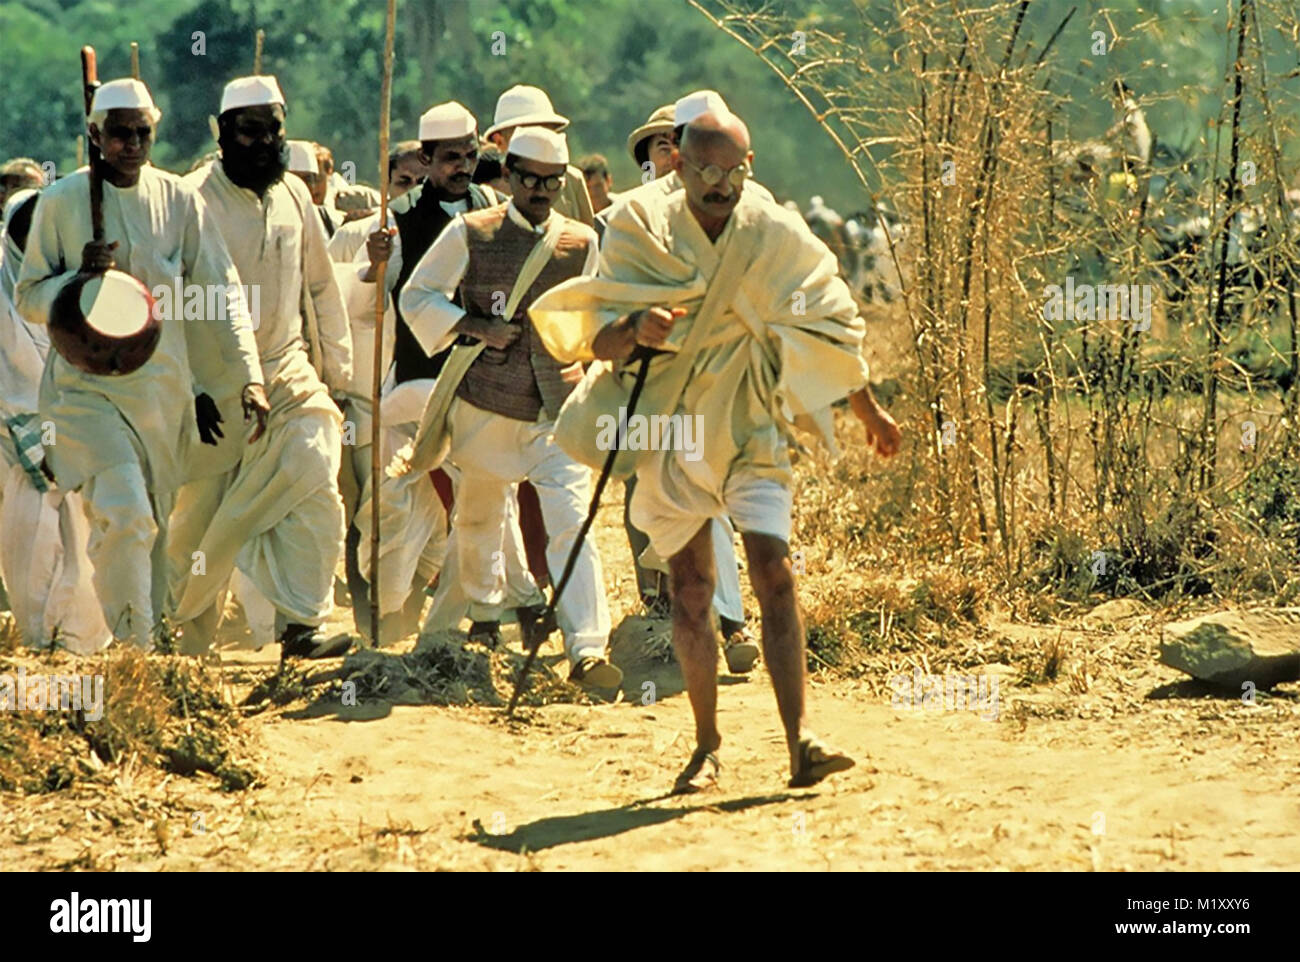 GANDHI 1982 International Film Investors film with Ben Kingsley - Stock Image